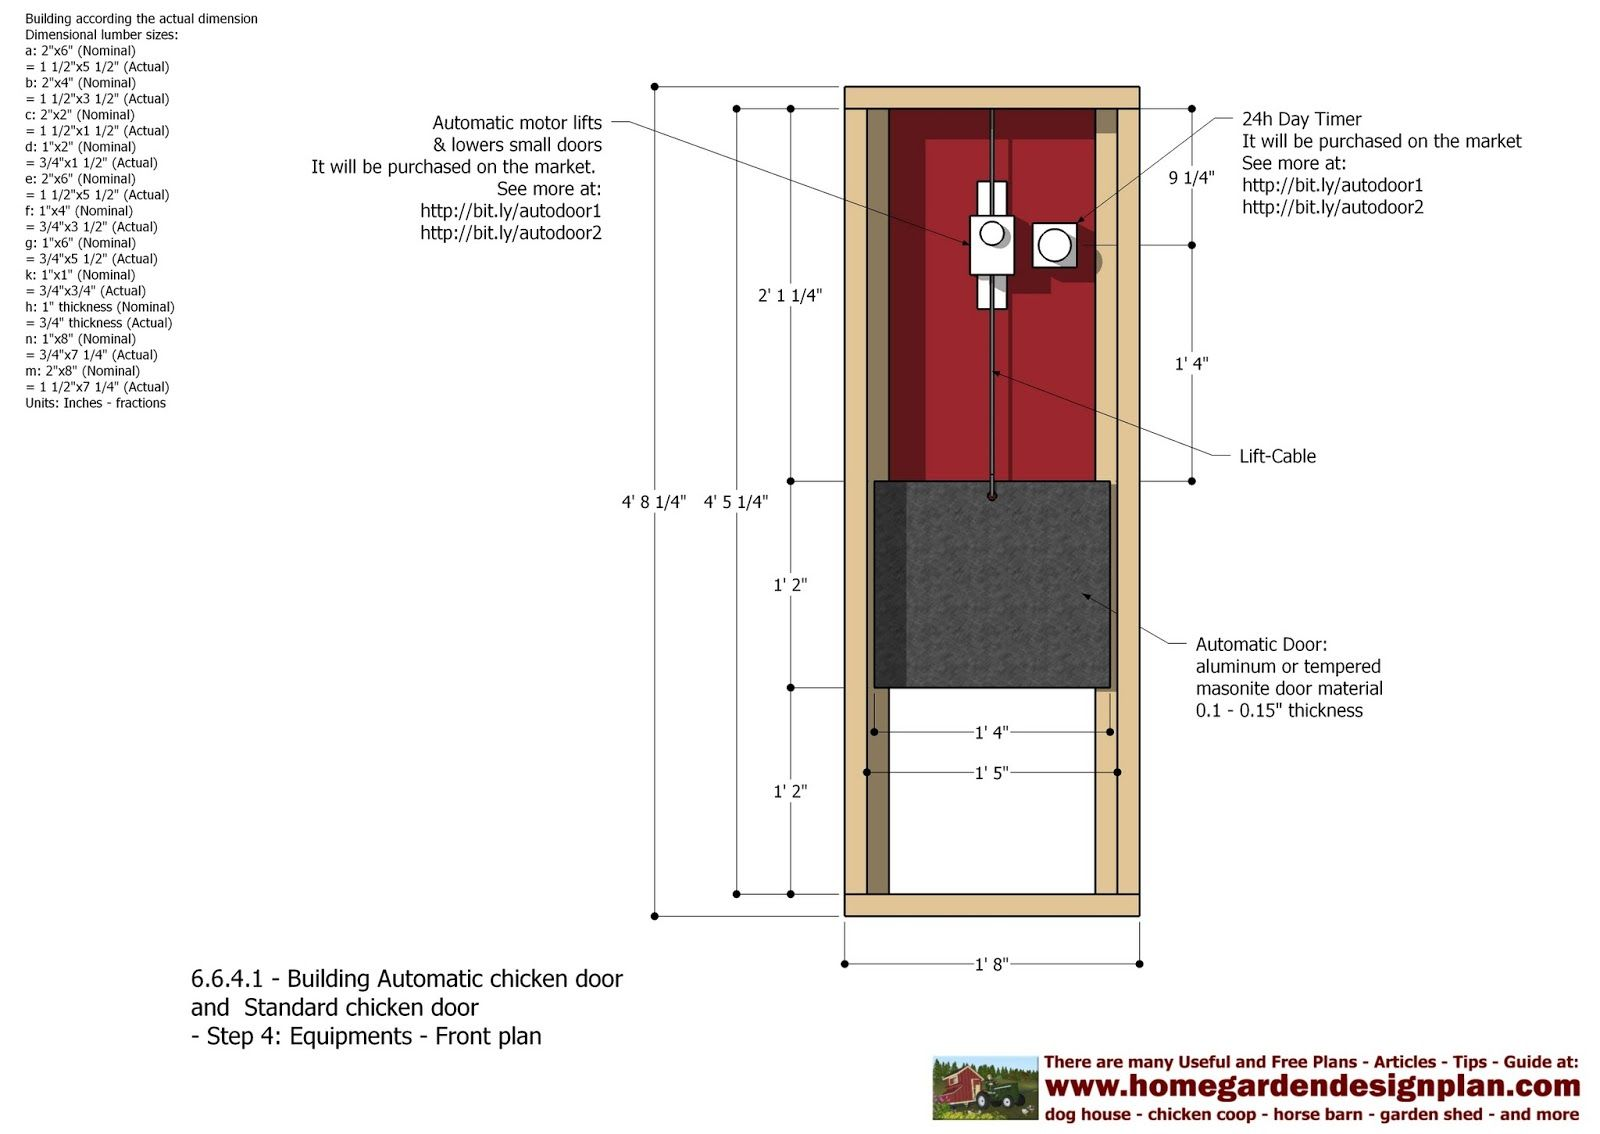 Home Garden Plans Automatic Chicken Coop Door Chicken Coop Plans Construction Coop Plans Building A Chicken Coop Automatic Chicken Coop Door